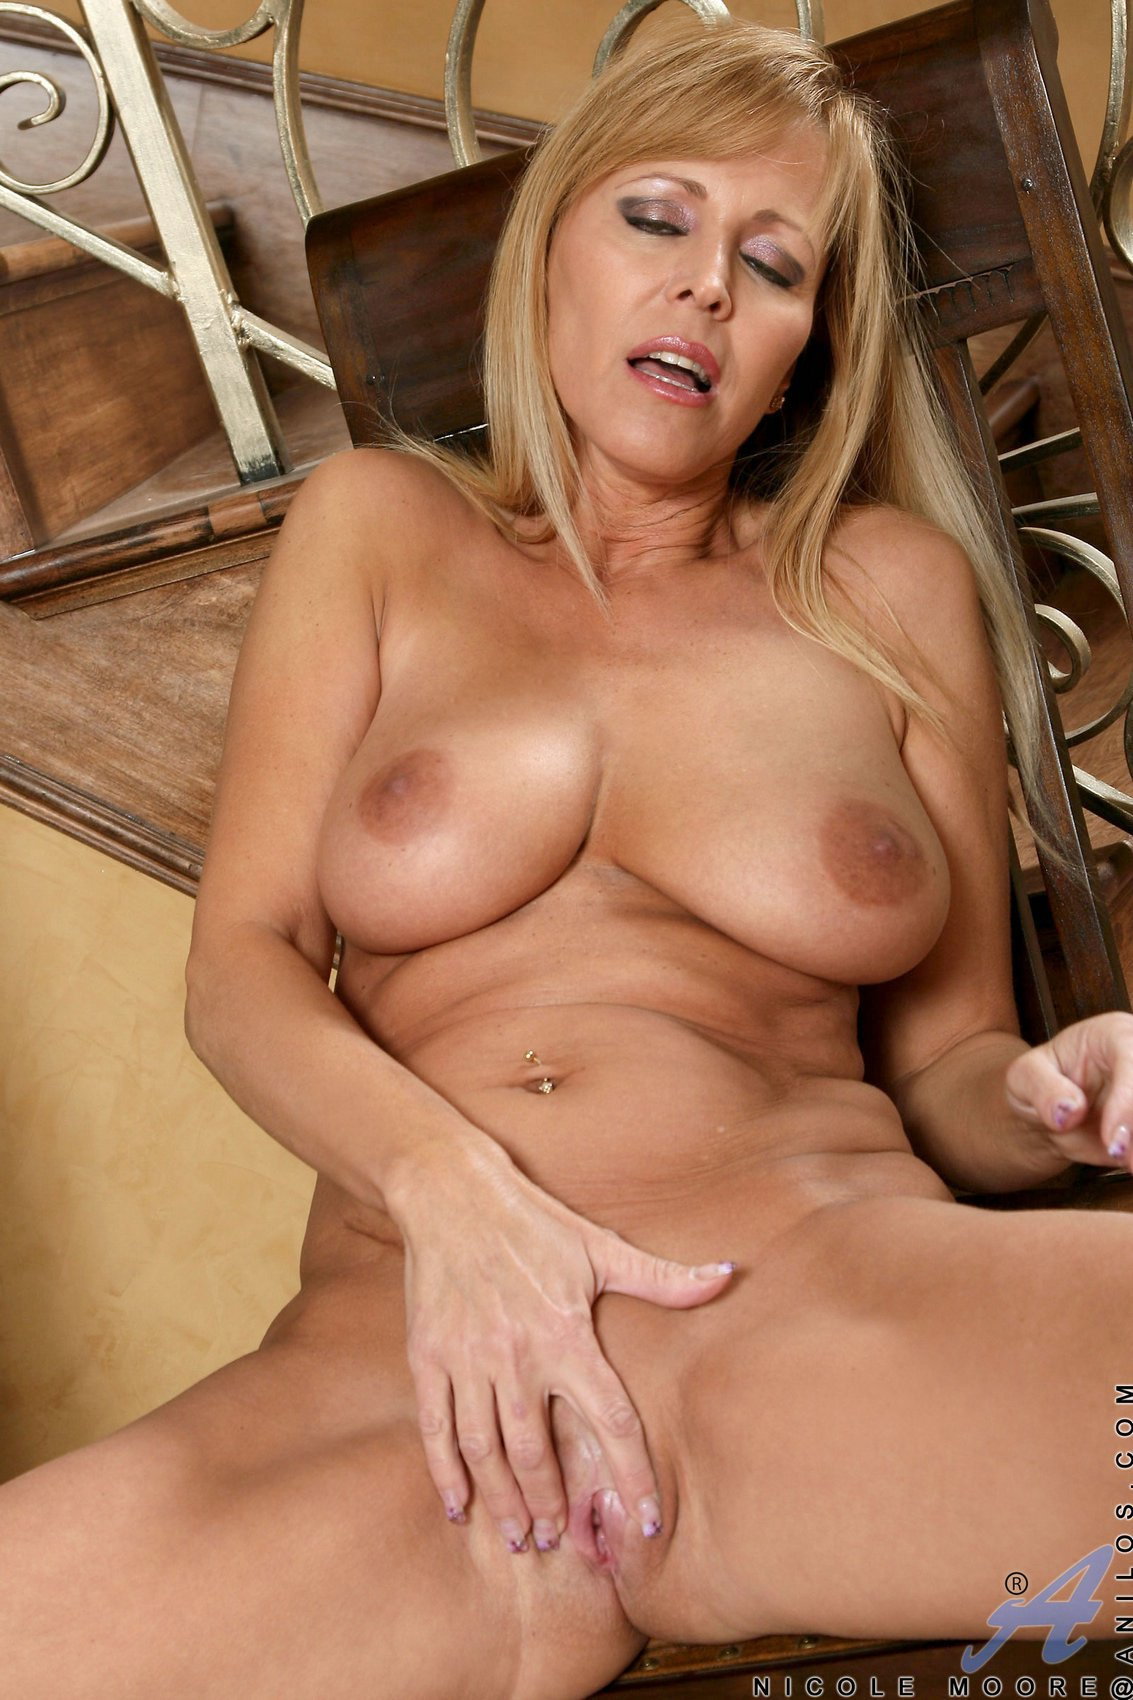 Nicole Moore Free Porn Pics gorgeous milf nicole moore shows off her sexy body and big